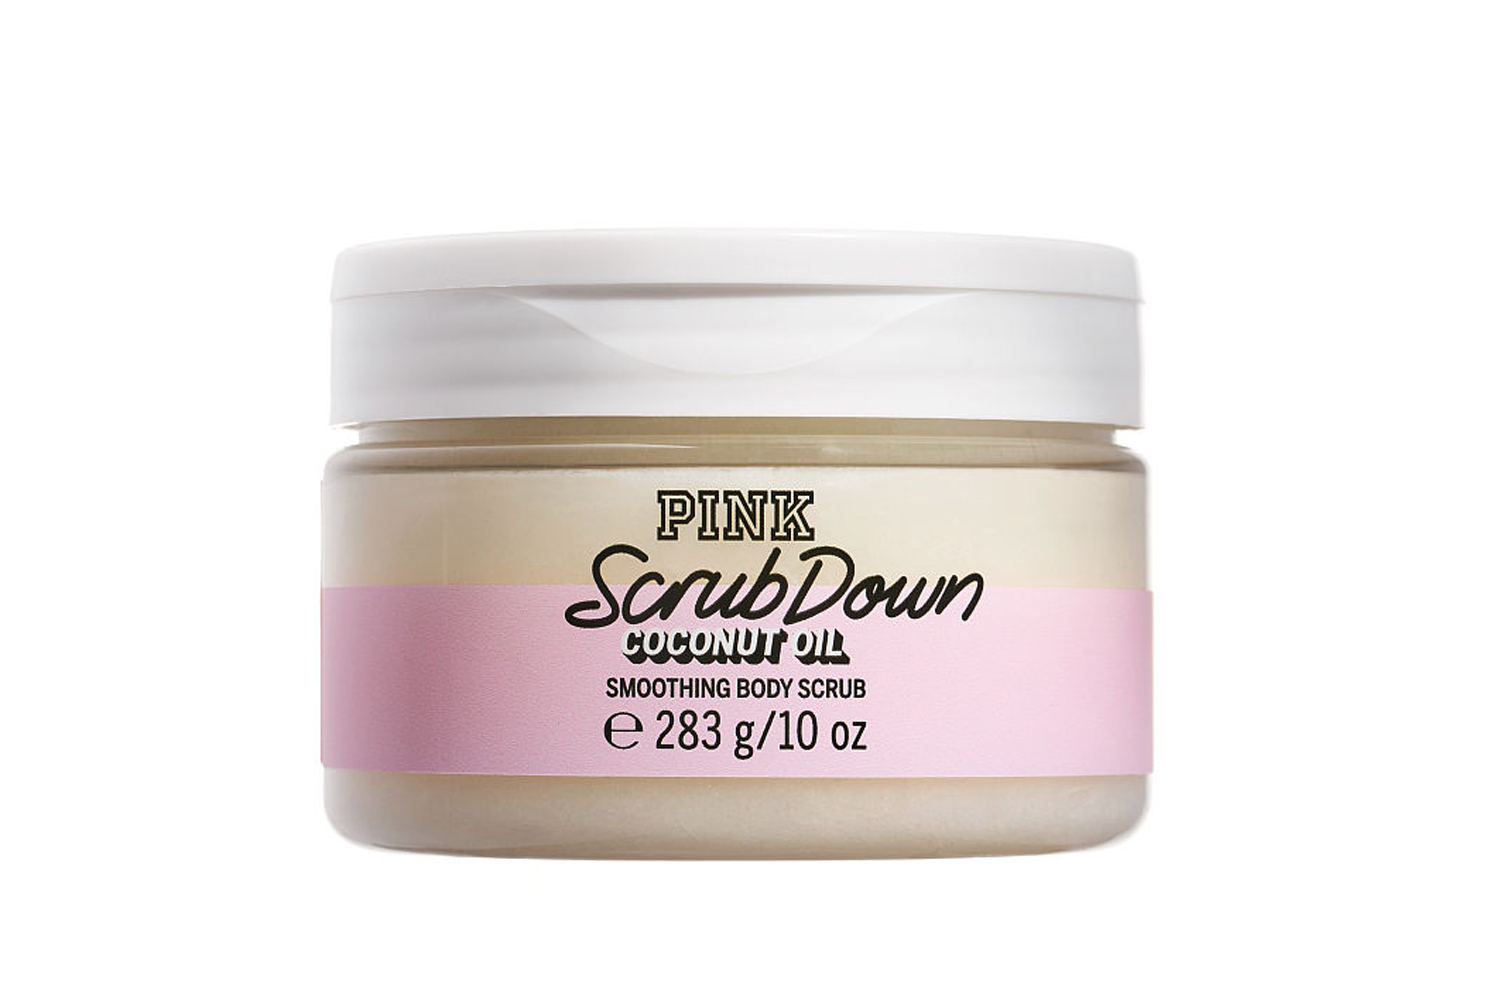 VS Pink - PINK Coconut Scrub Down Coconut Oil